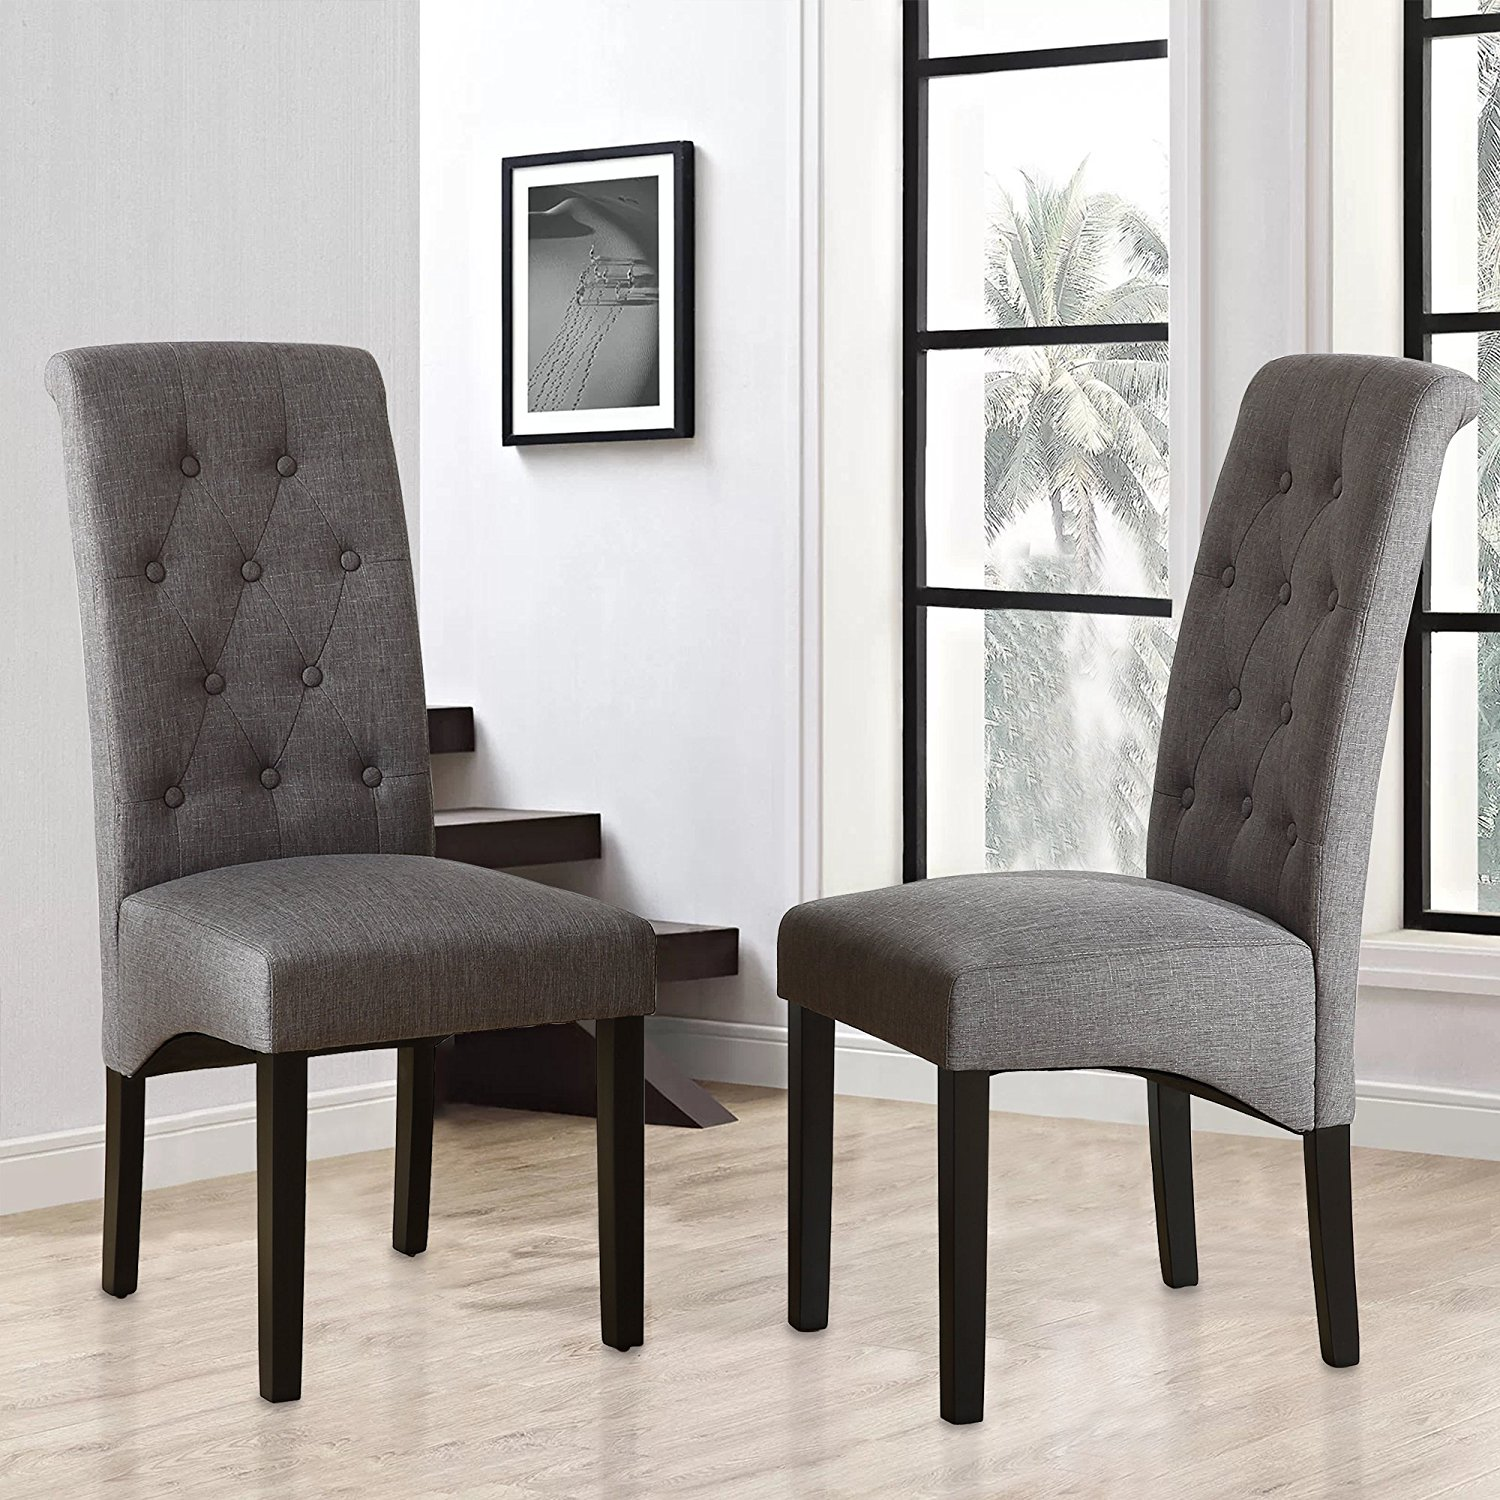 Cheap Grey Tufted Dining Chair Find Grey Tufted Dining